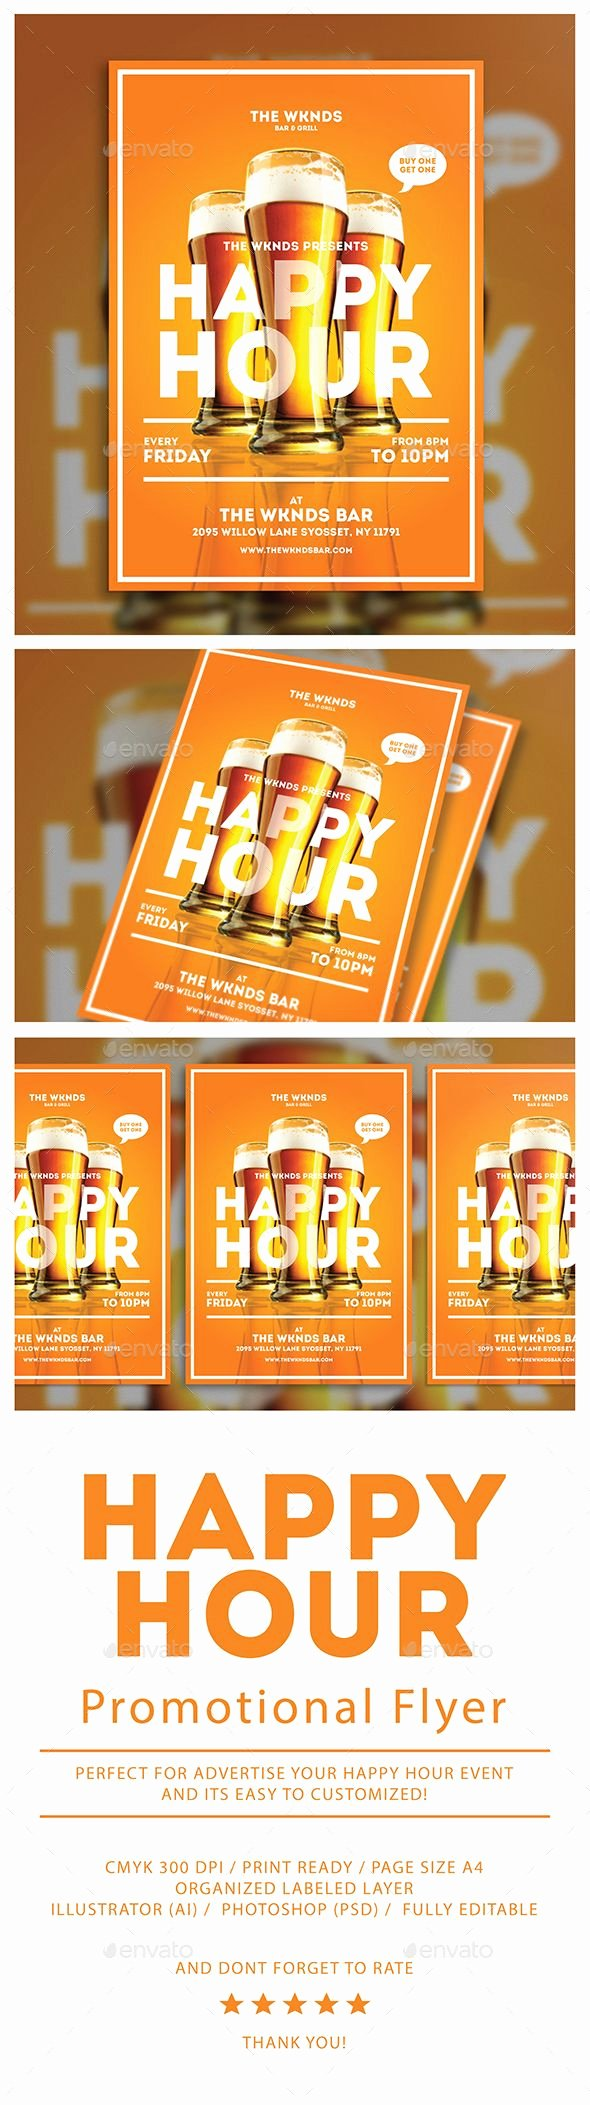 Happy Hour Flyer Template Awesome Happy Hour Flyer